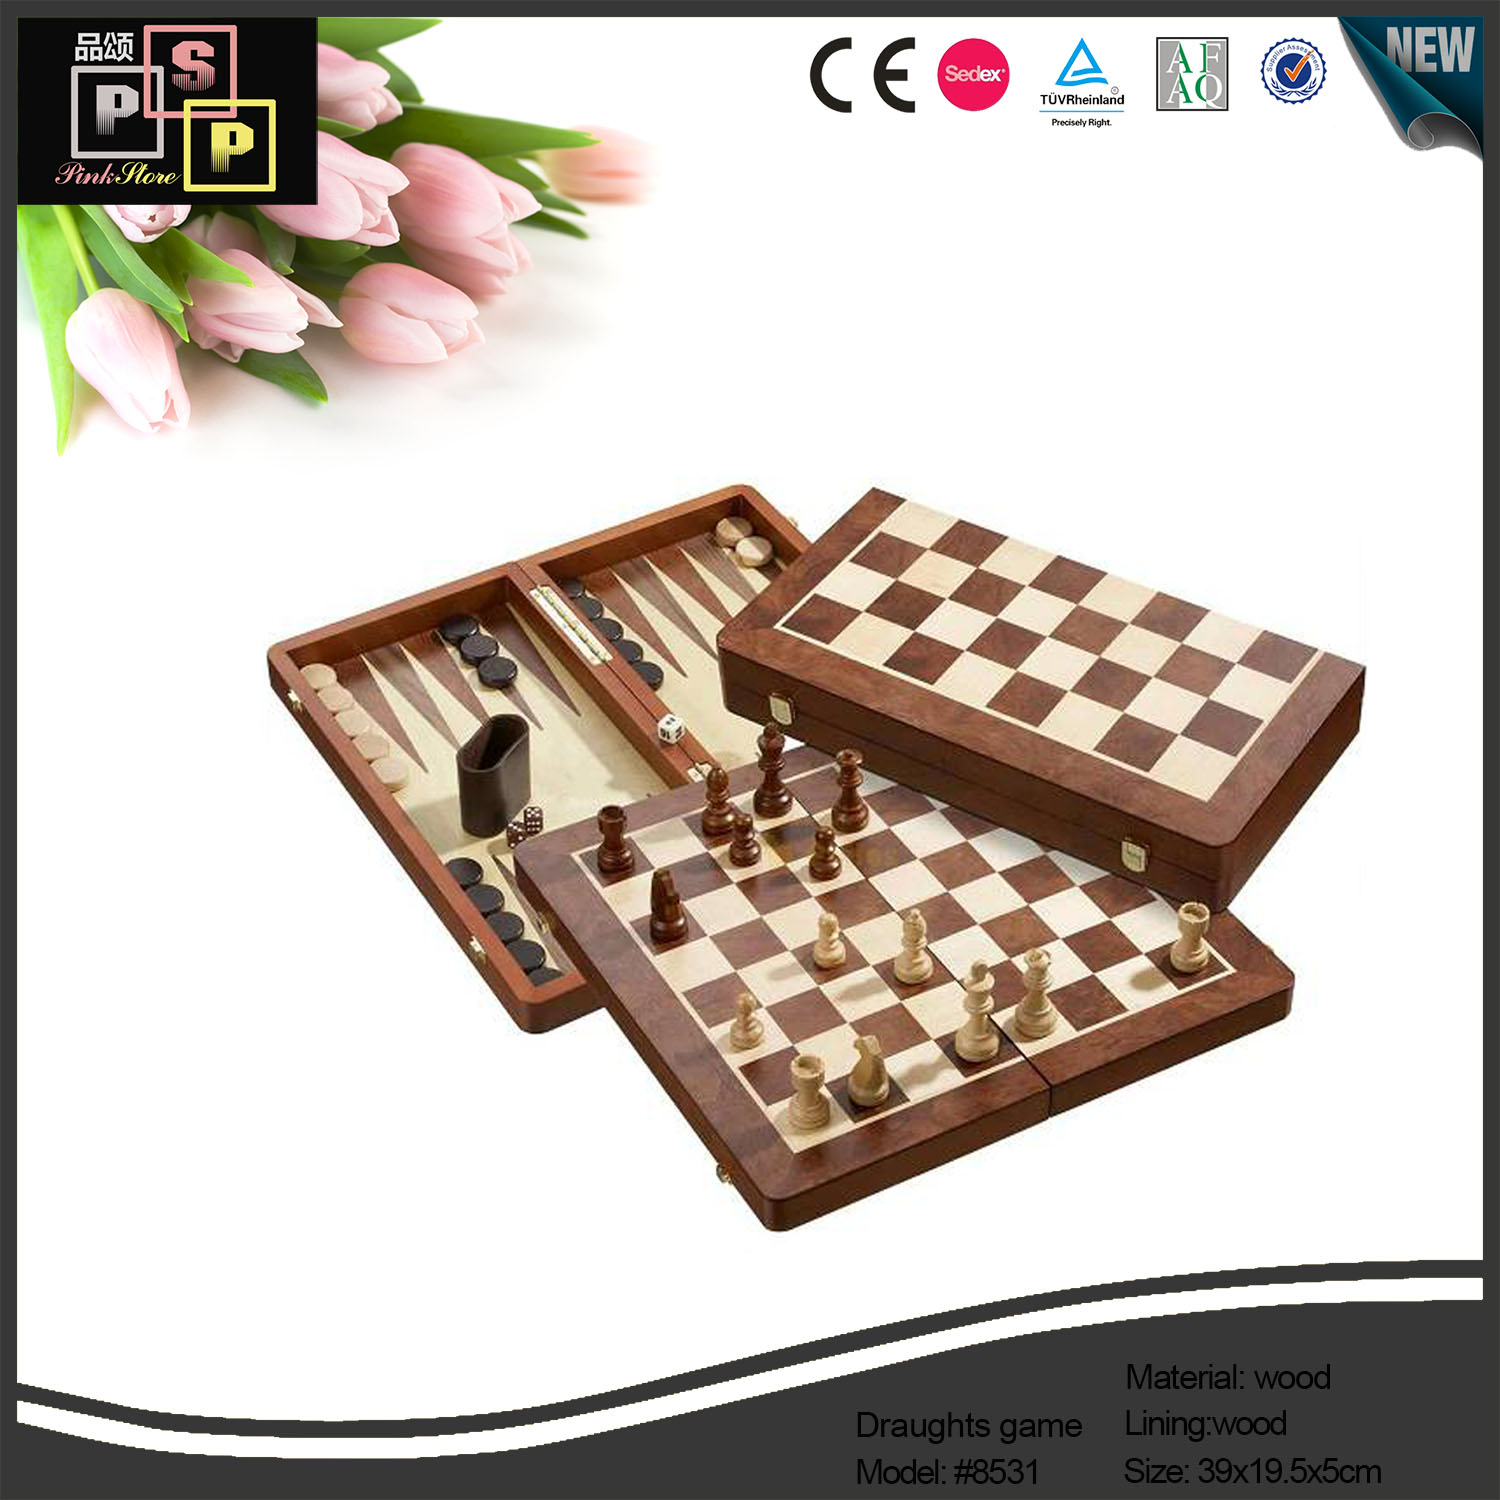 Custom handmade High End Excellent Standard Wood Draughts Antique Game Set